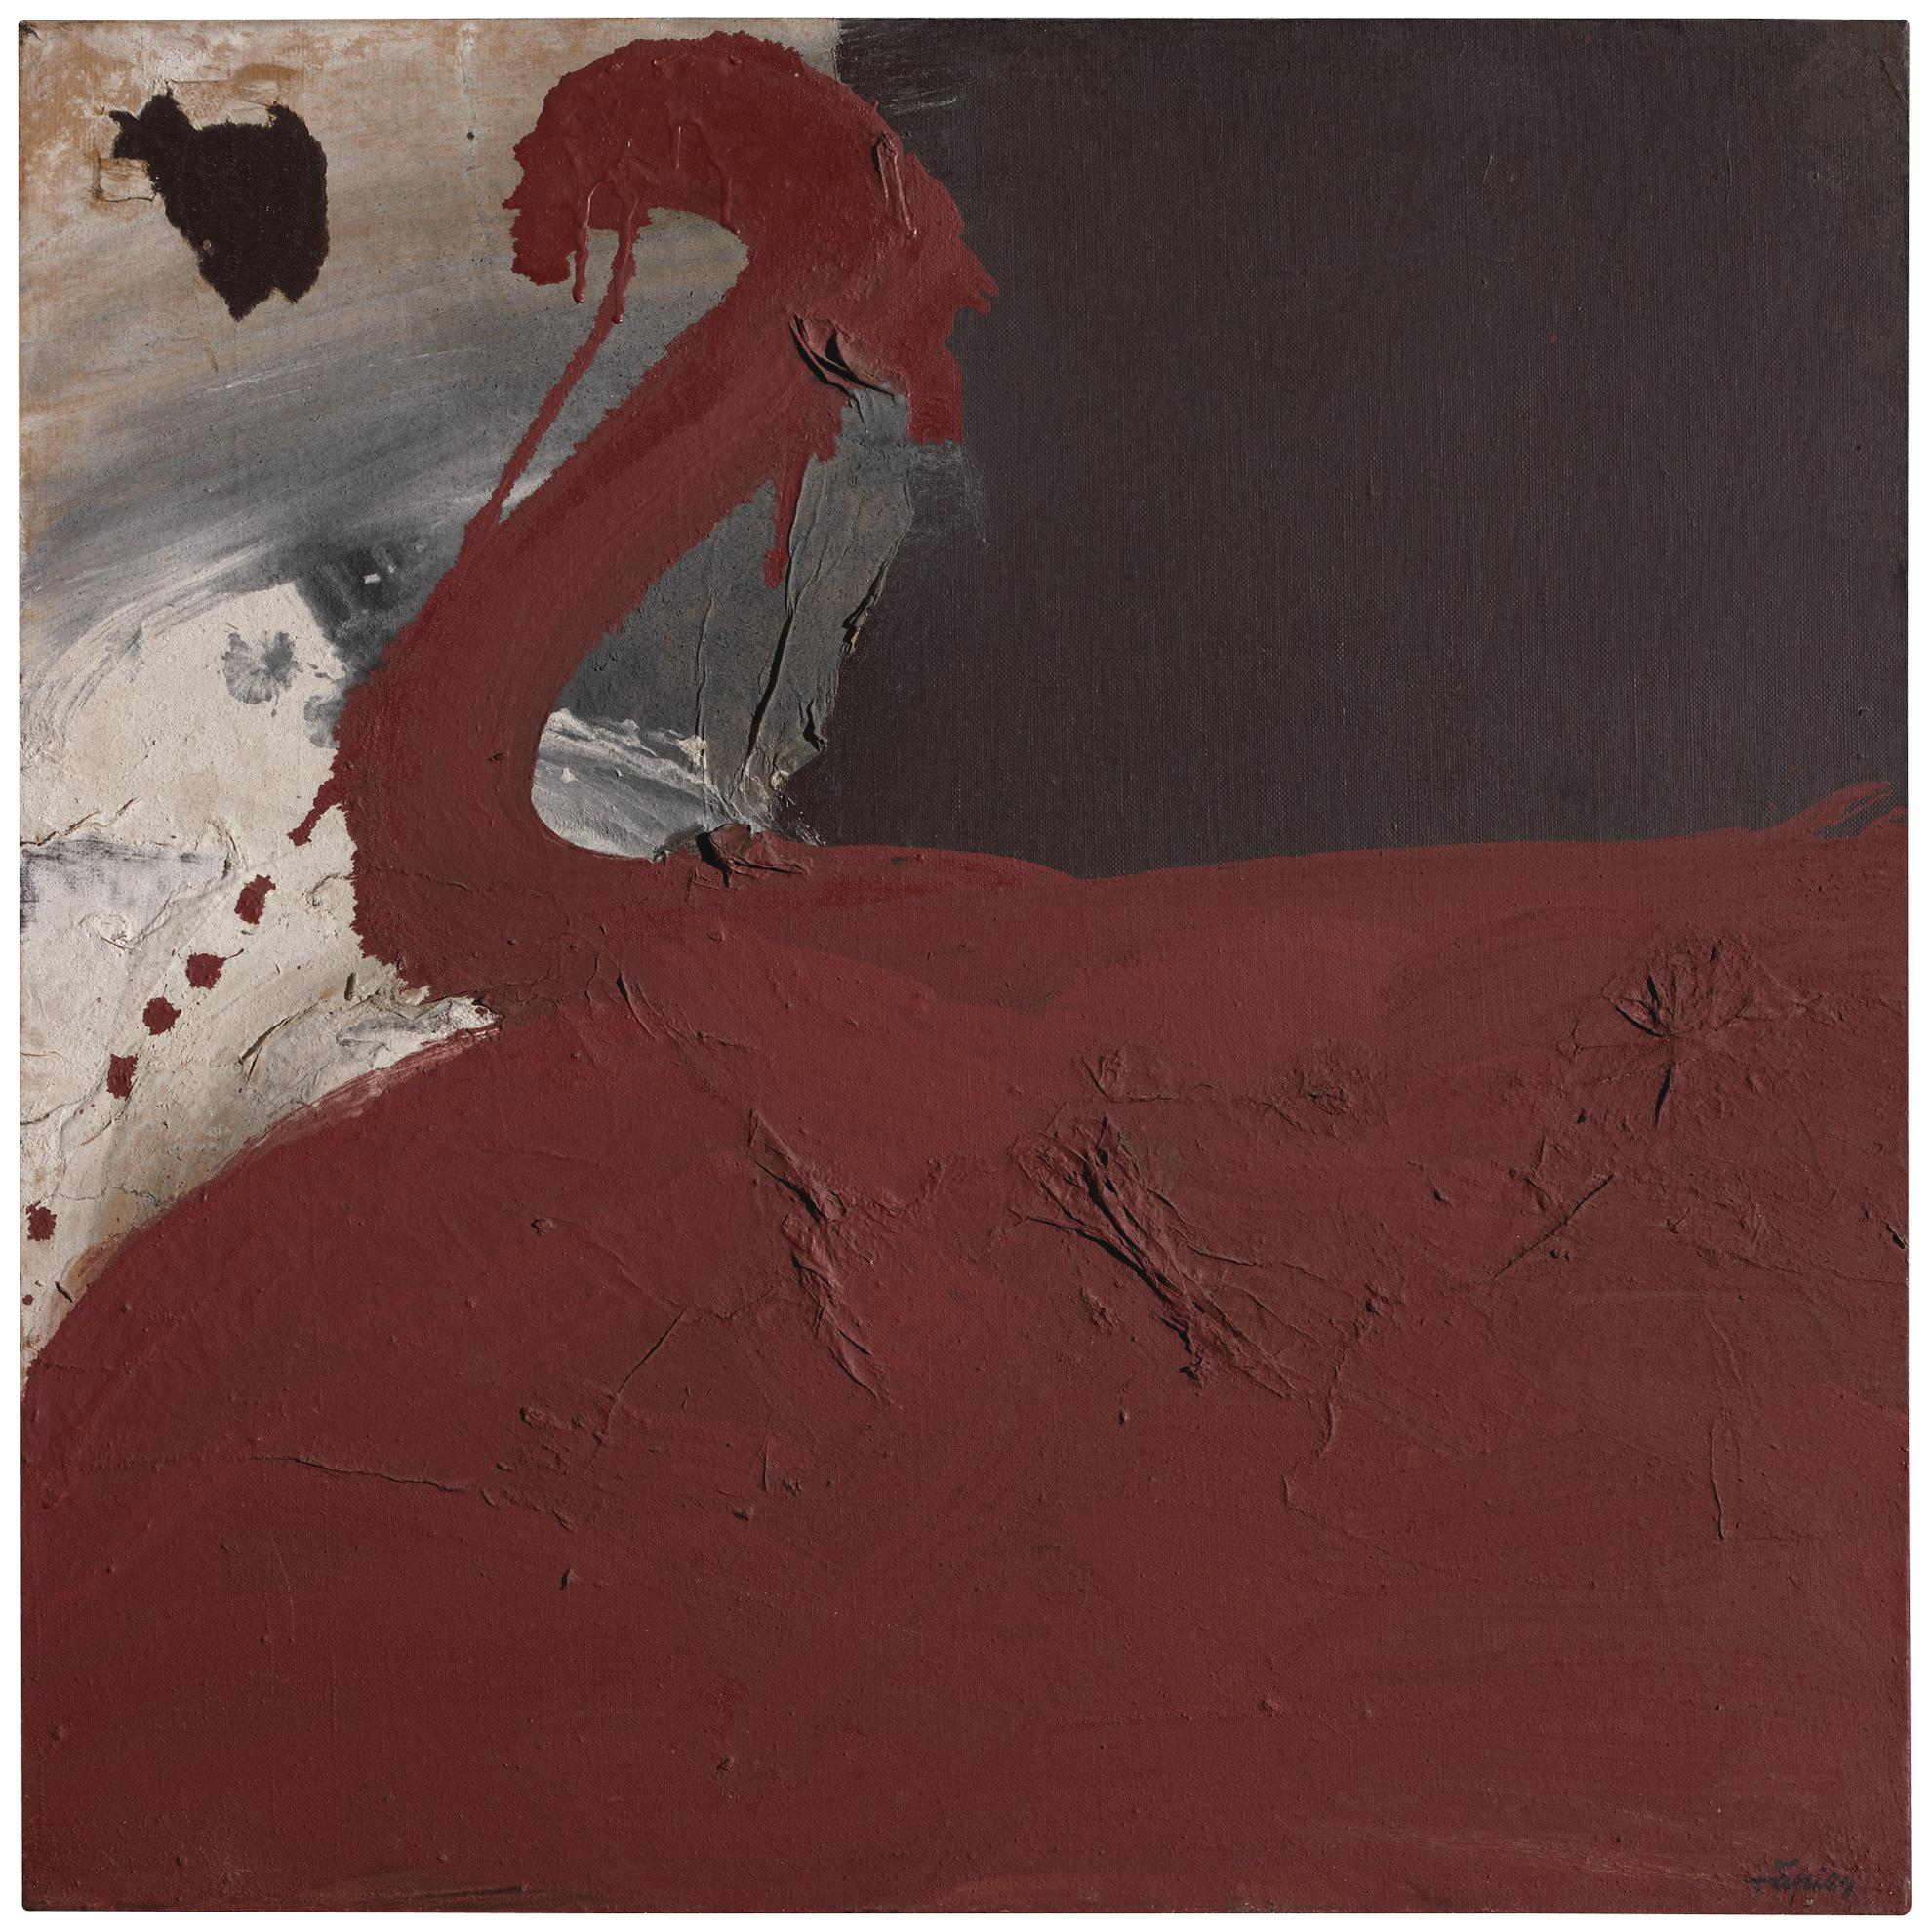 Antoni Tapies Pinturas Pintura Collage Oxid Vermell Rusty Red Painting Collage Widewalls